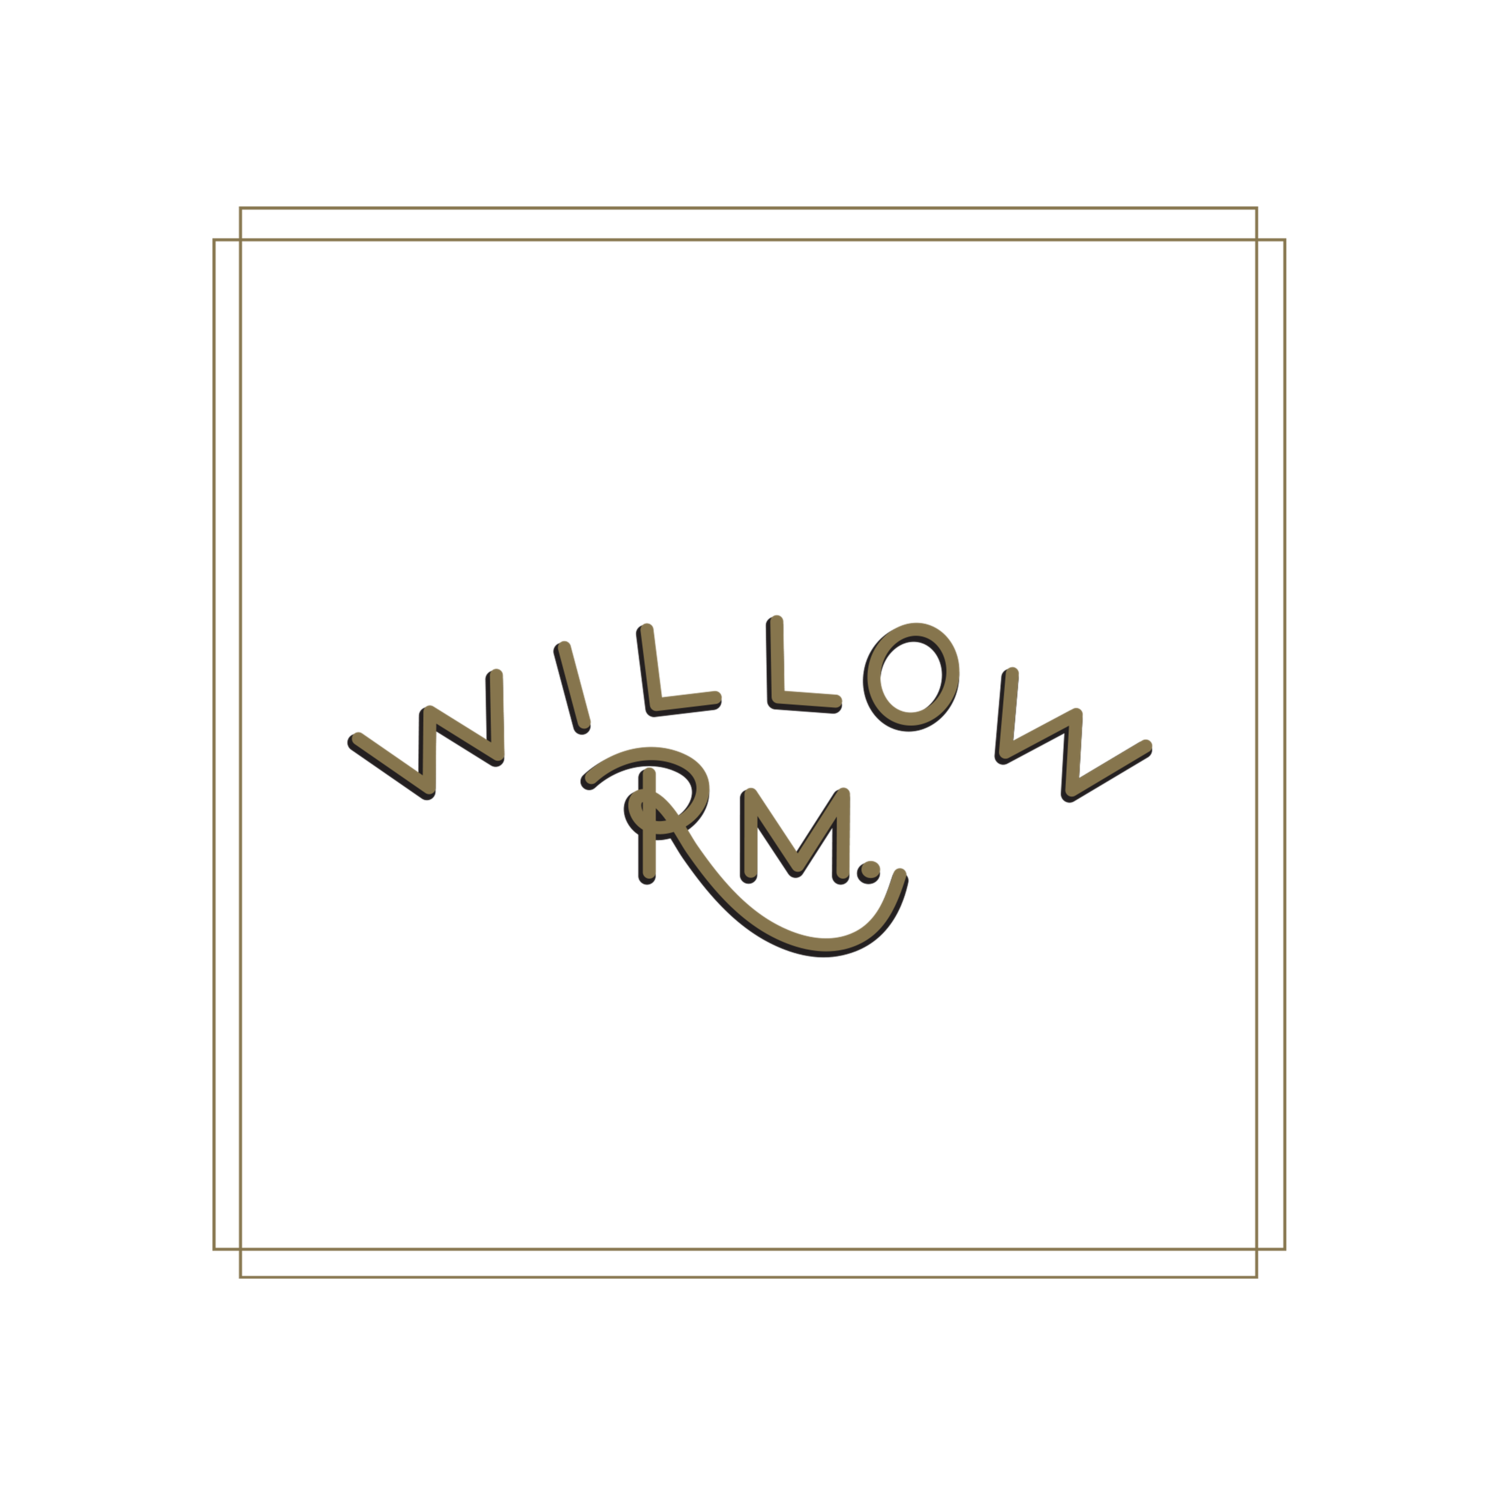 Willow Rm